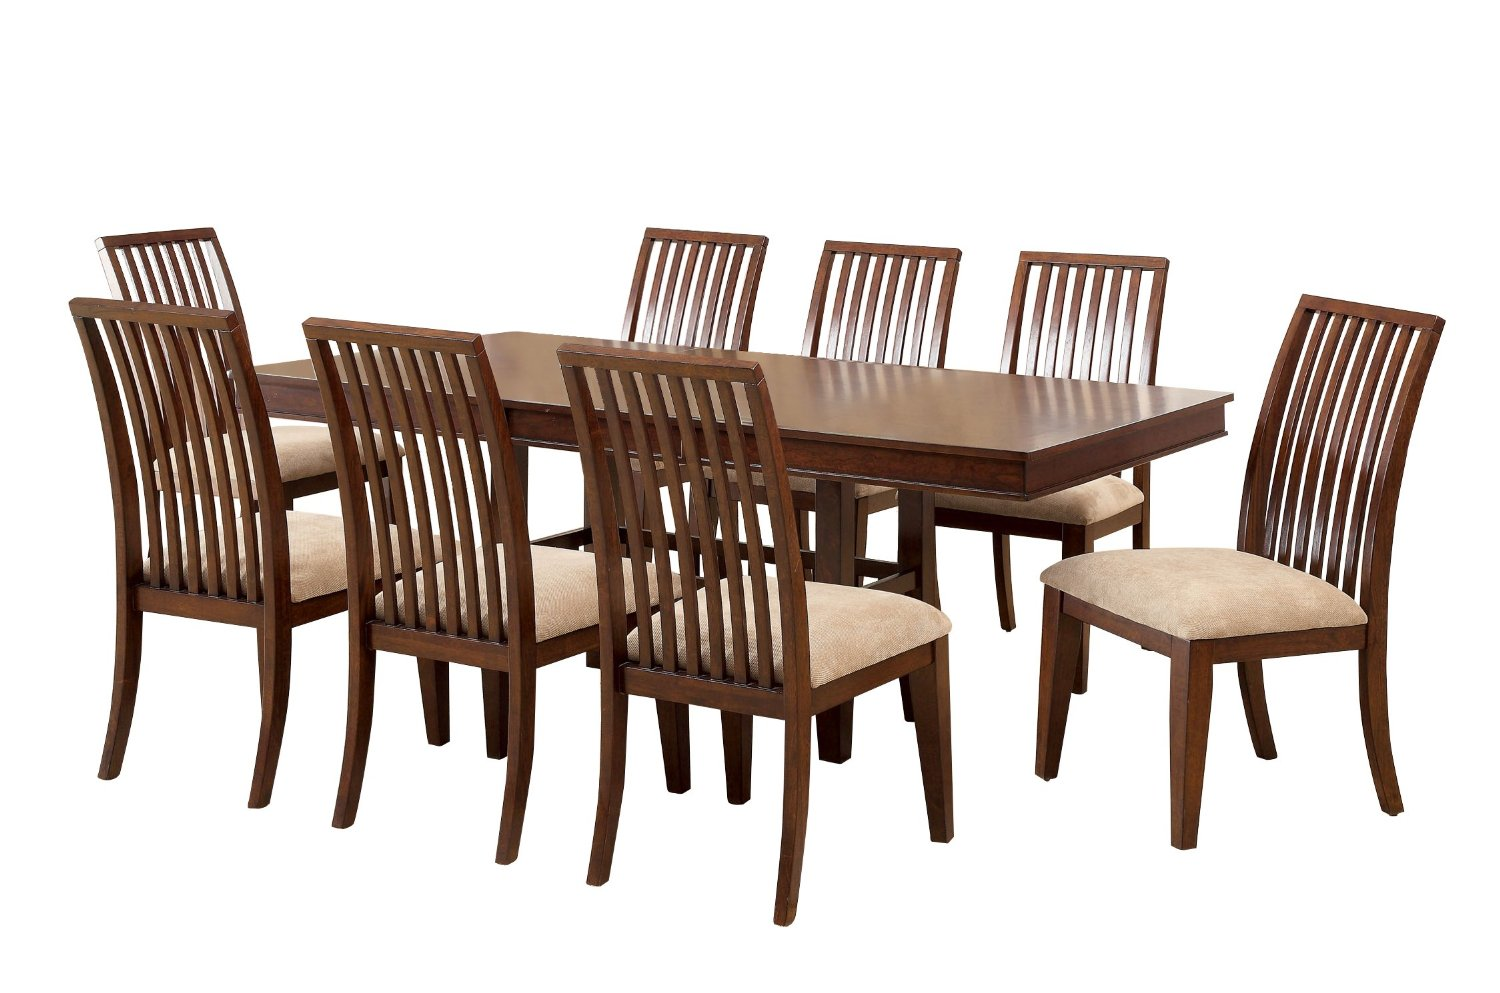 Furniture of America Chester 7-Piece Dining Set with Extending Table, Brown Cherry